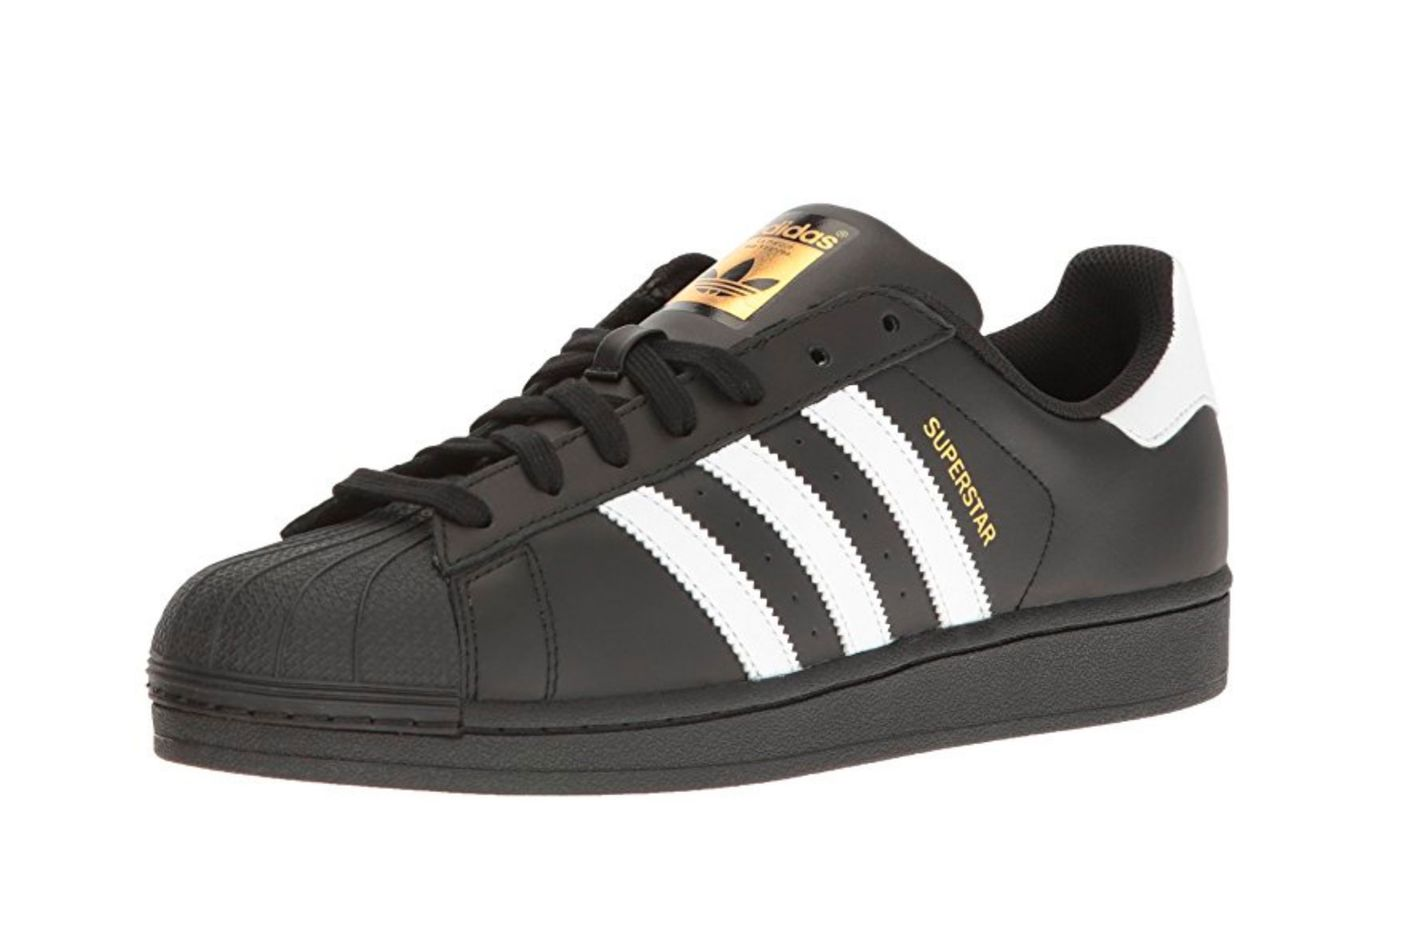 newest collection c3a8e aefc5 Adidas Originals Men s Superstar Foundation Casual Sneaker at Amazon. Buy